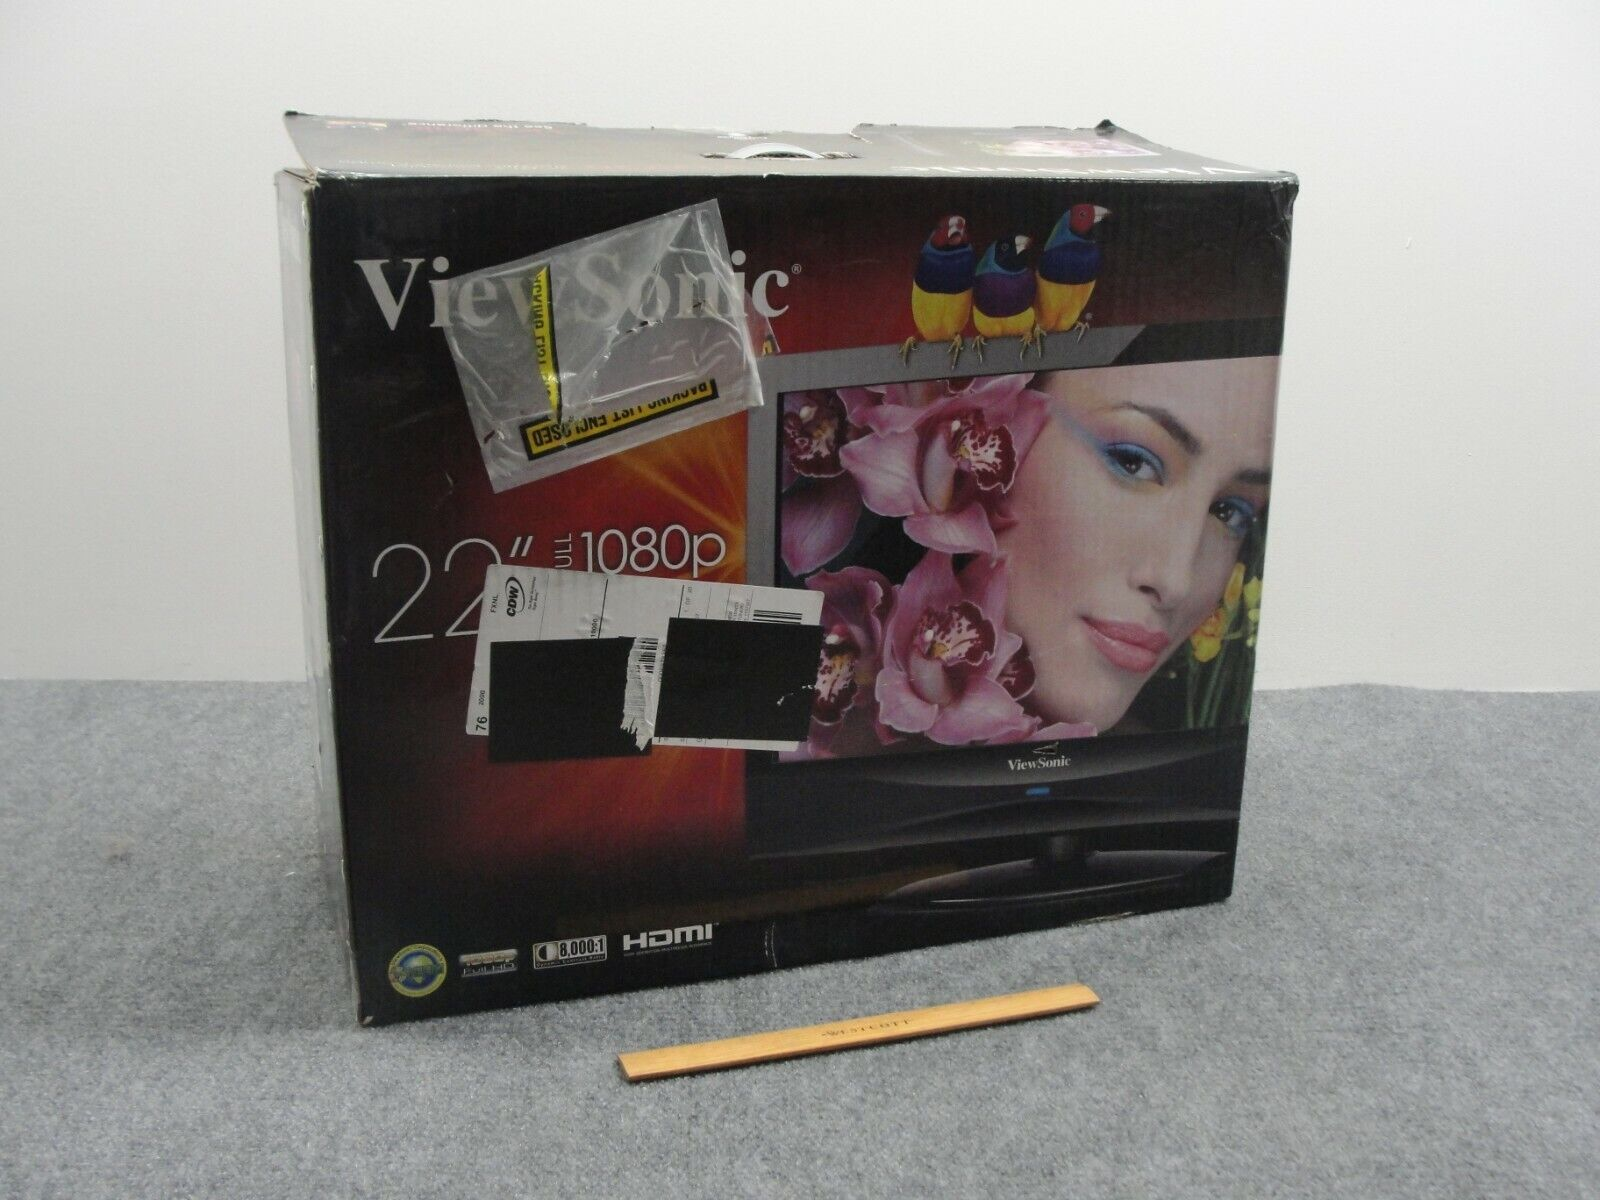 ViewSonic VT2230 22'' HDTV/PC Monitor Combo -New Open Box-